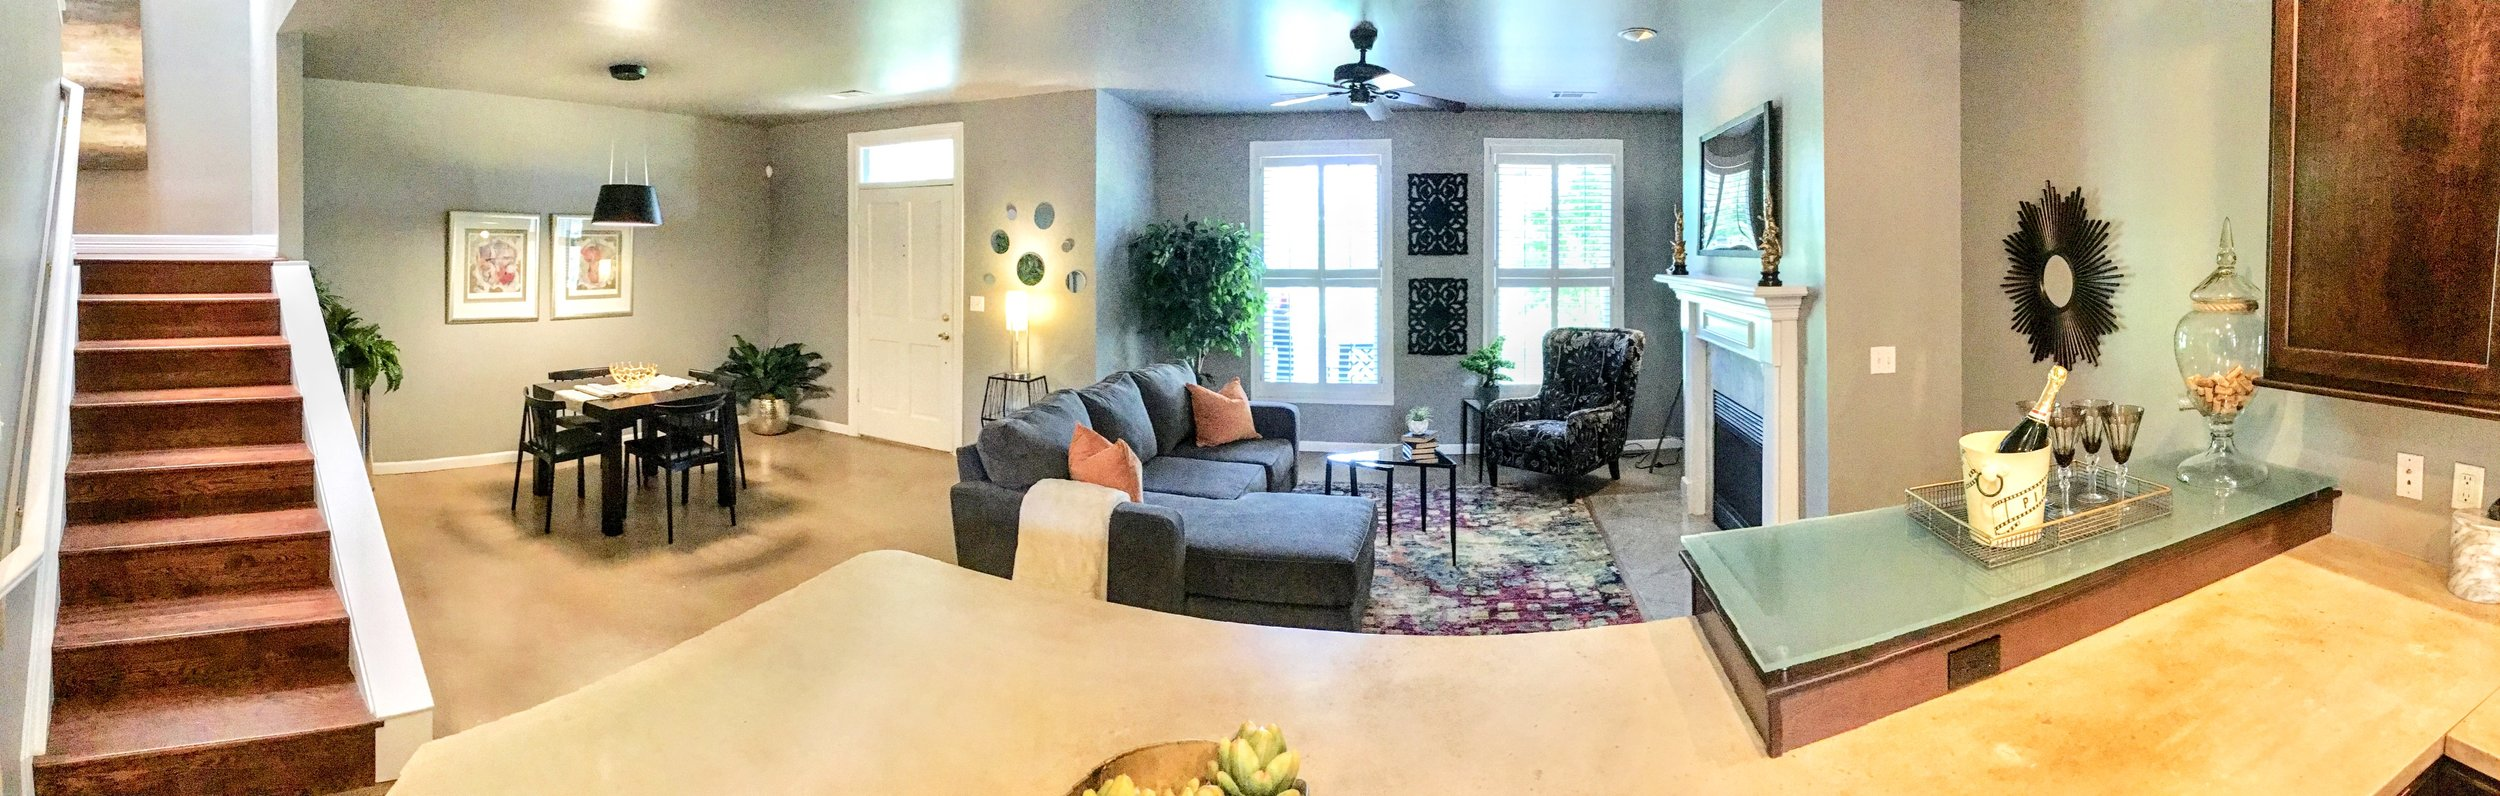 Staging Tulsa - Central Park Condo Downstairs Pano.jpg